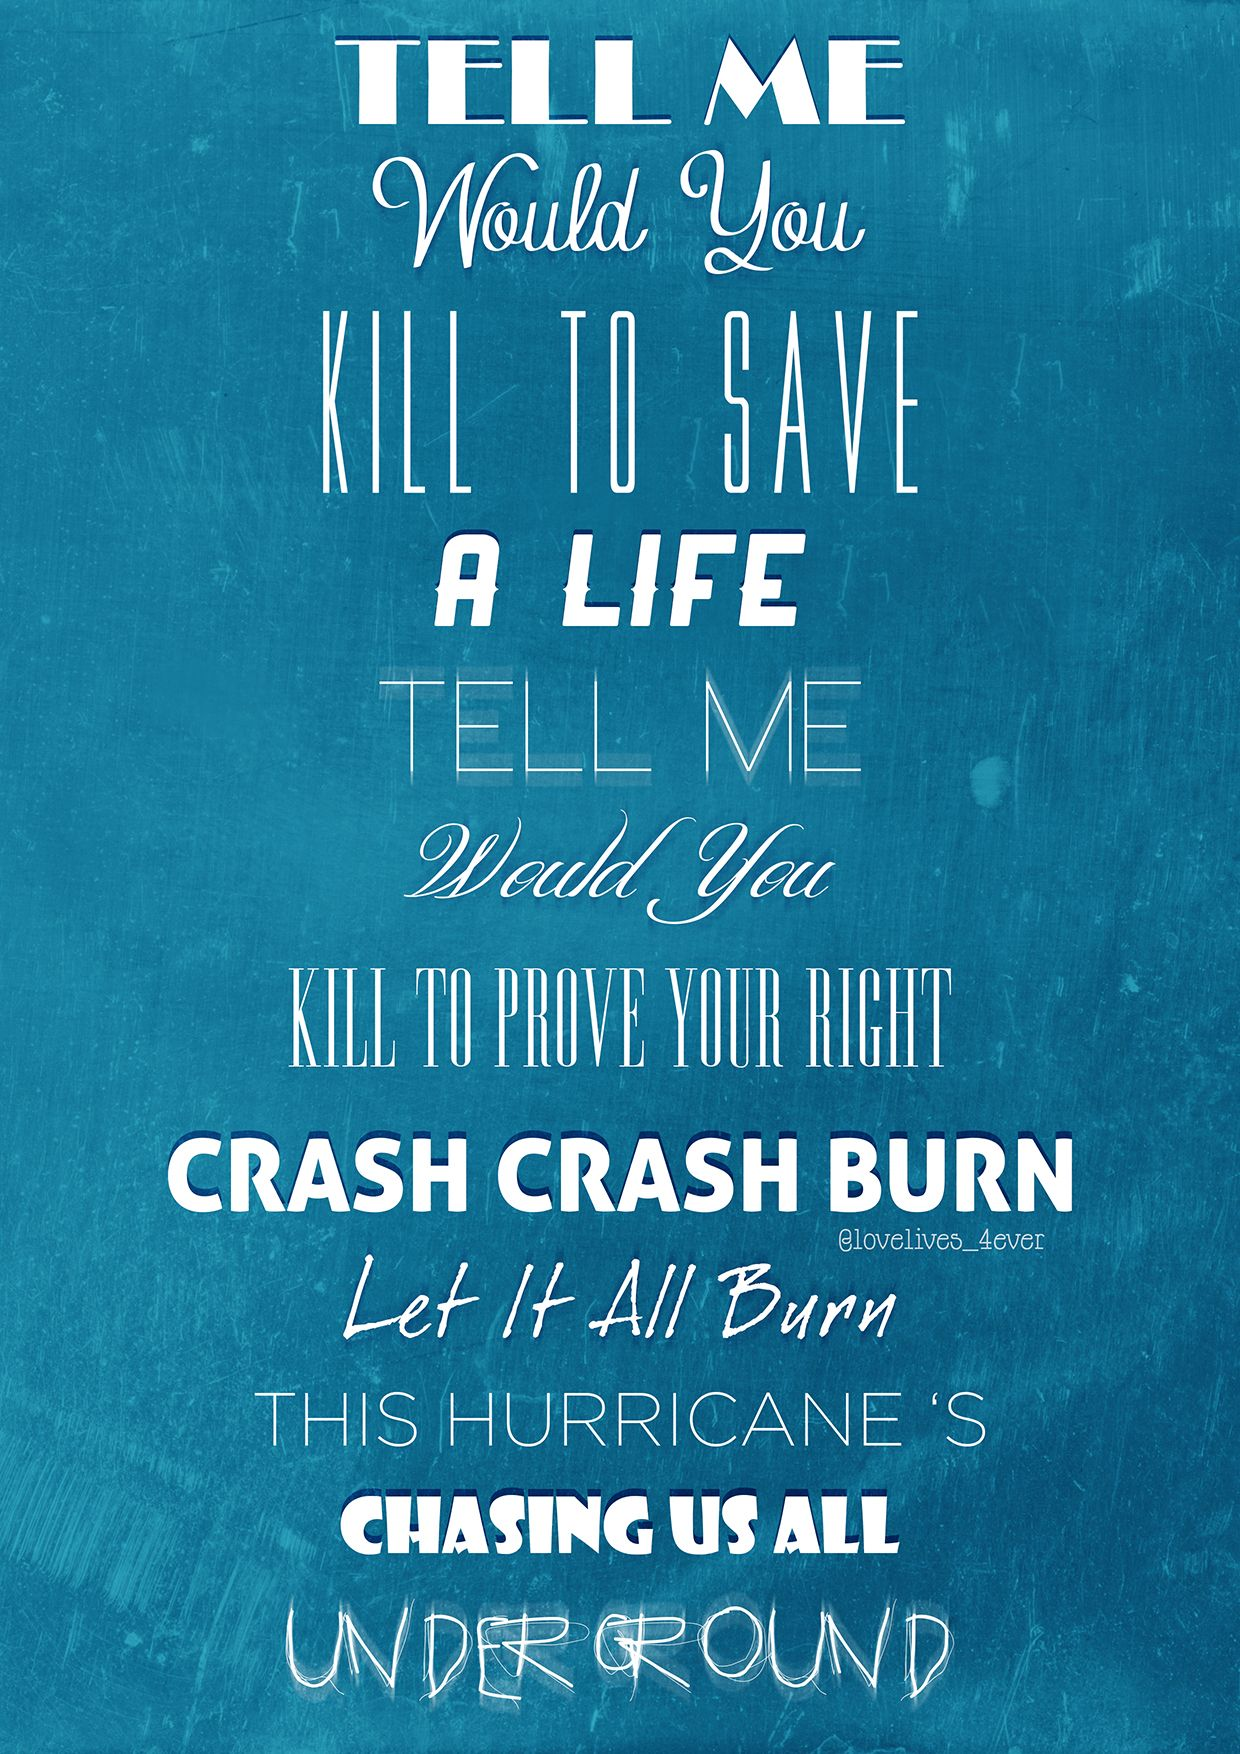 30 Seconds To Mars Hurricane  quotes  Pinterest  30 seconds